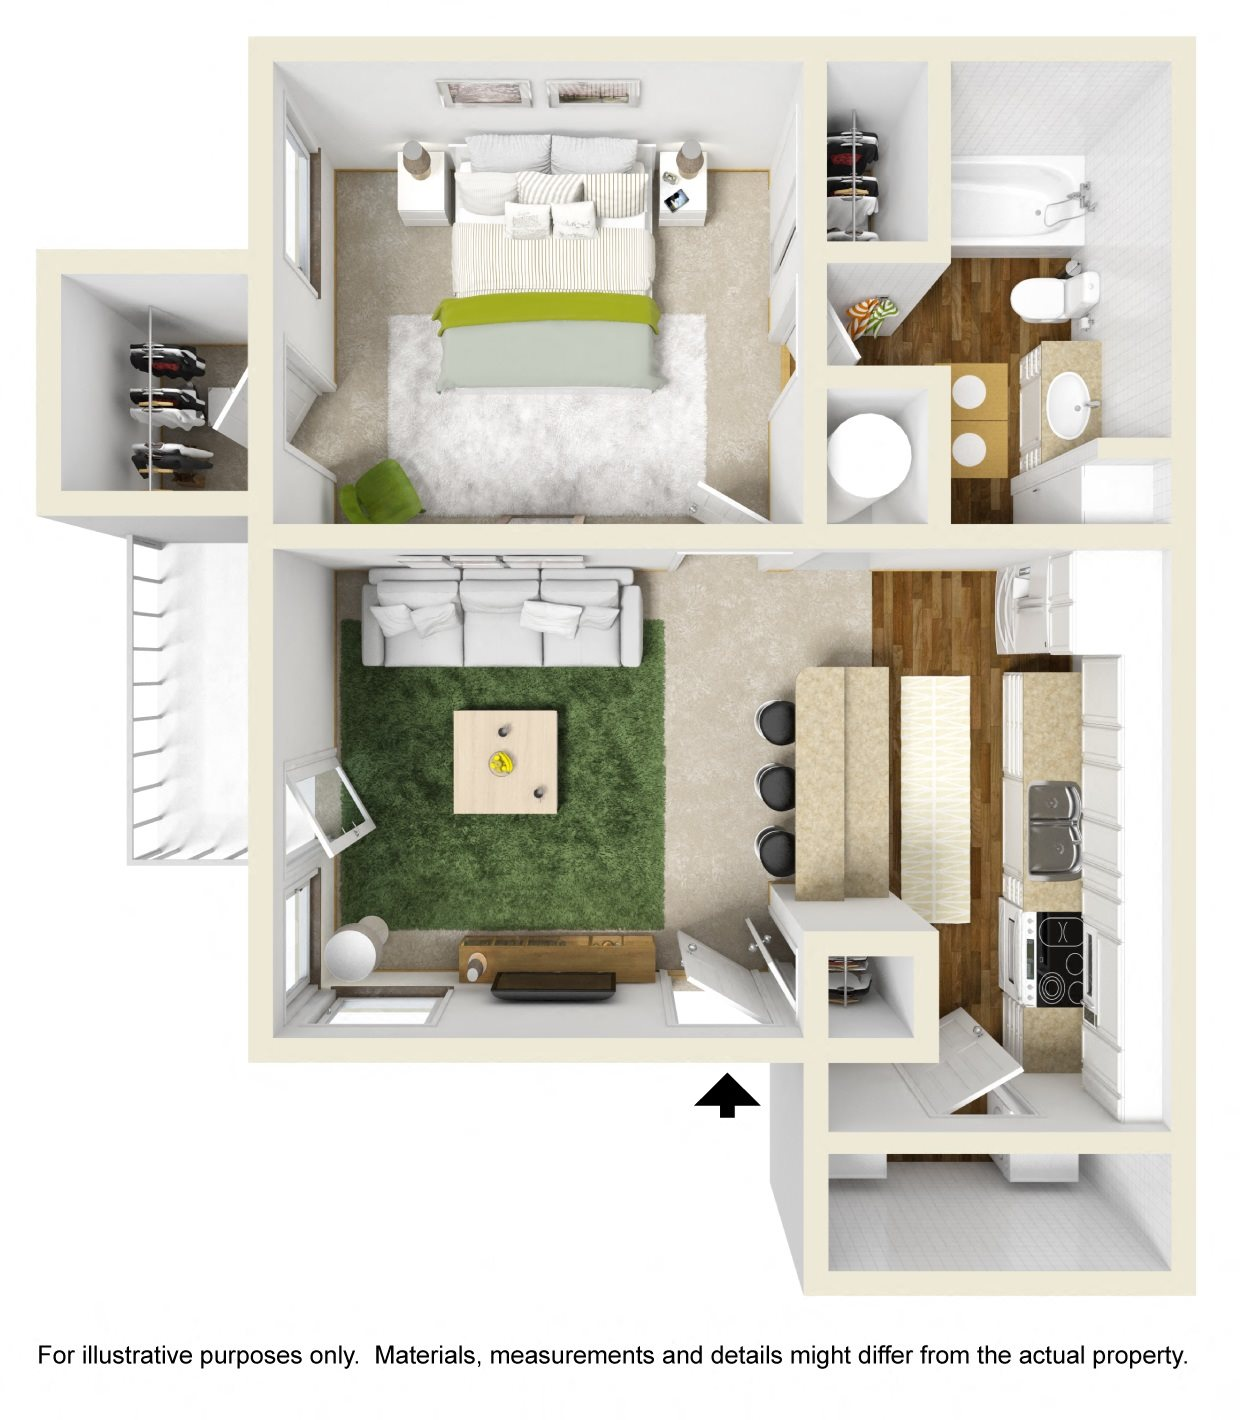 The Spruce Floor Plan 1